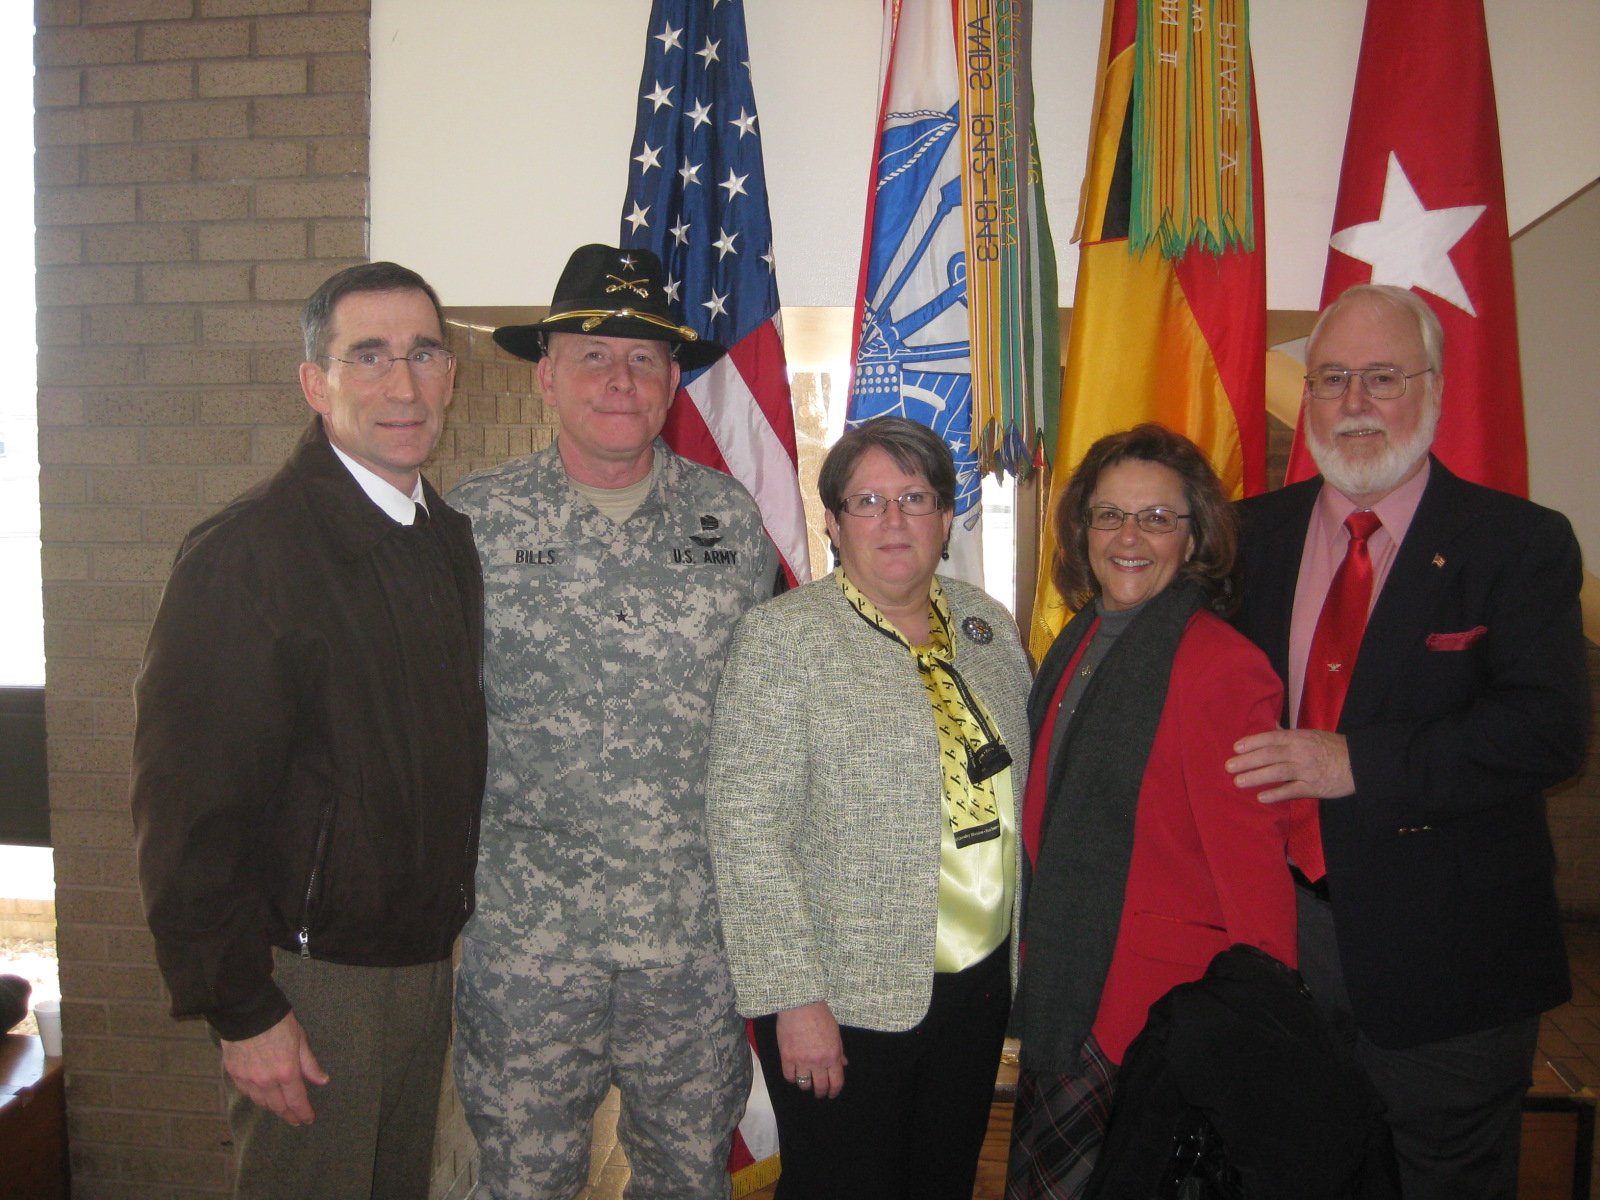 L to R:  Col. Doug Morrison, BG Mike Bills, Megan Bills, Monica Ramsey & Ed Ramsey, Jr.